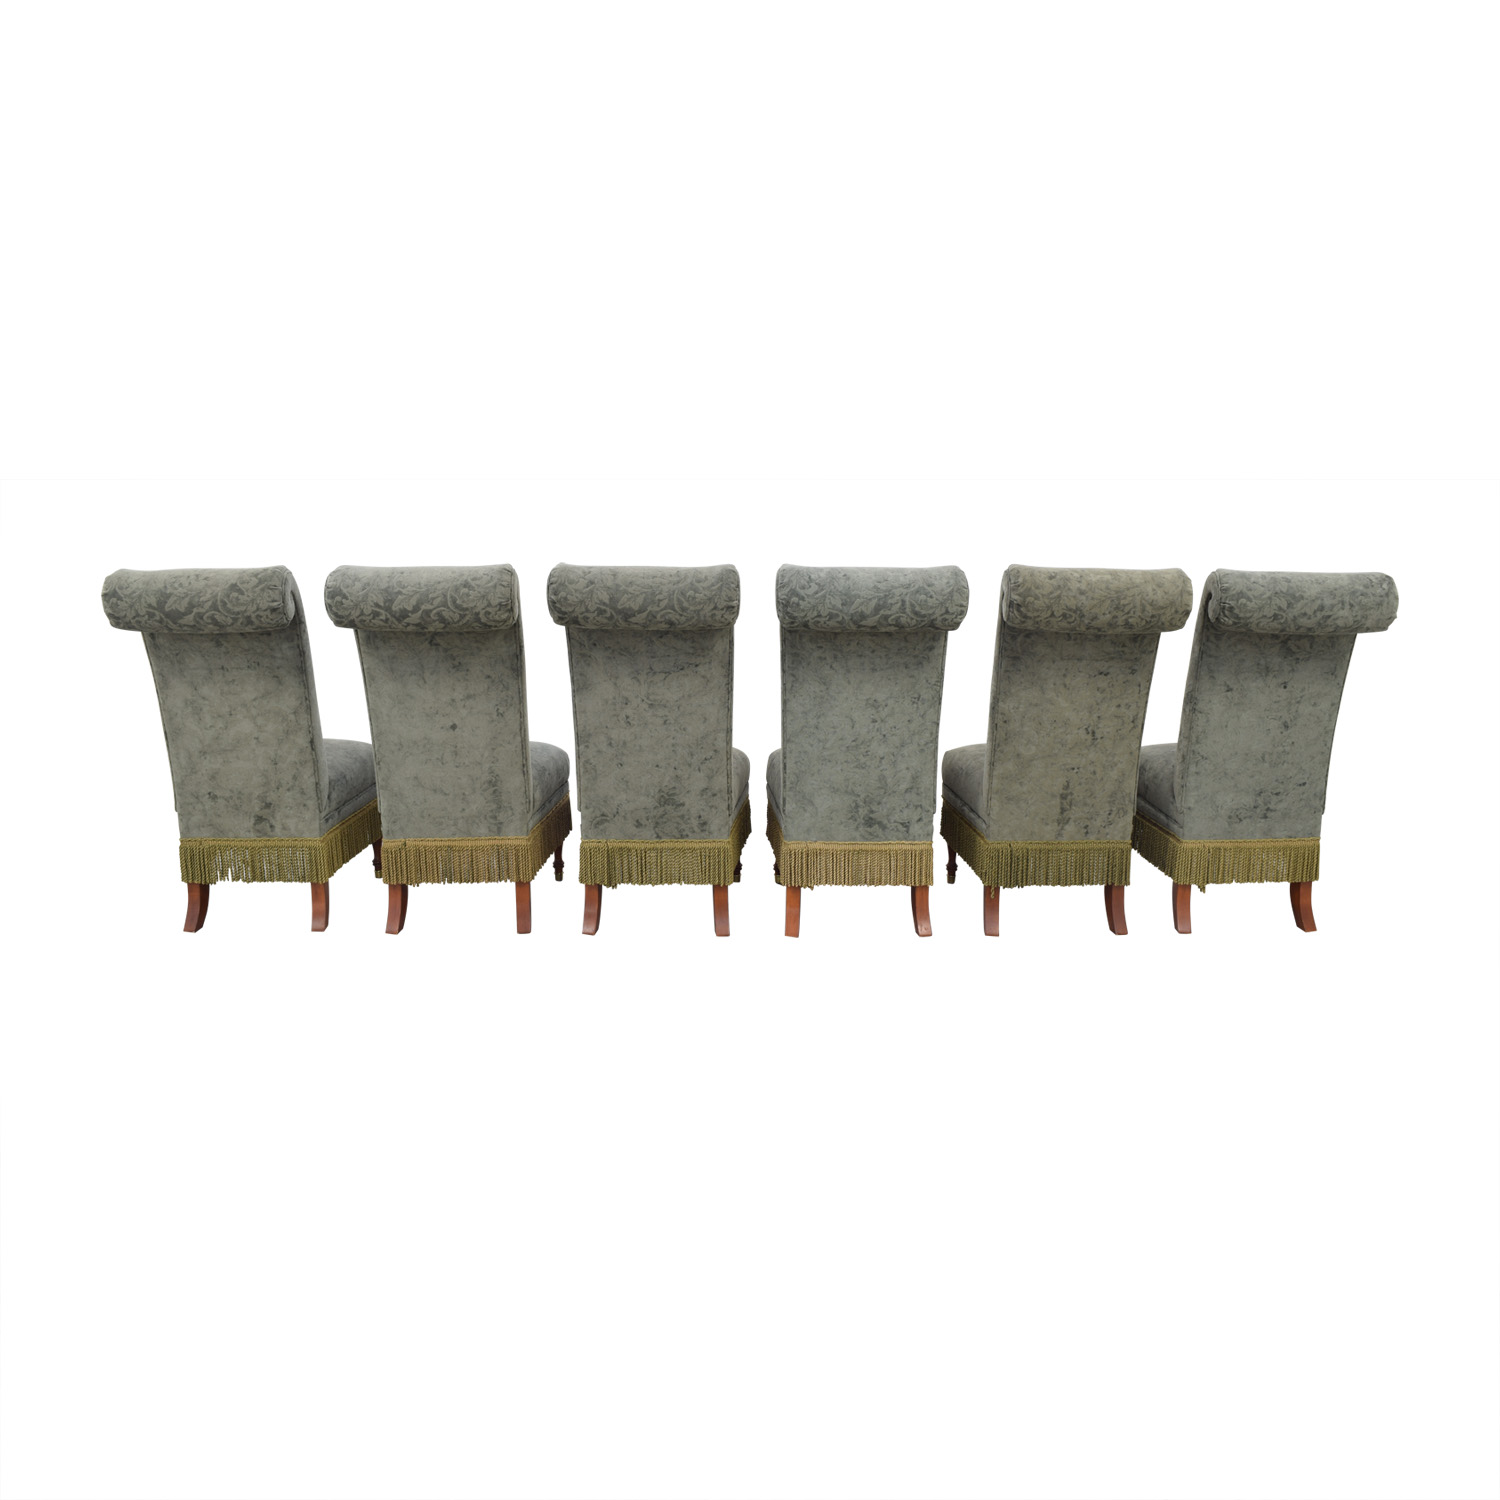 Drexel Heritage Drexel Heritage Dining Chairs Chairs